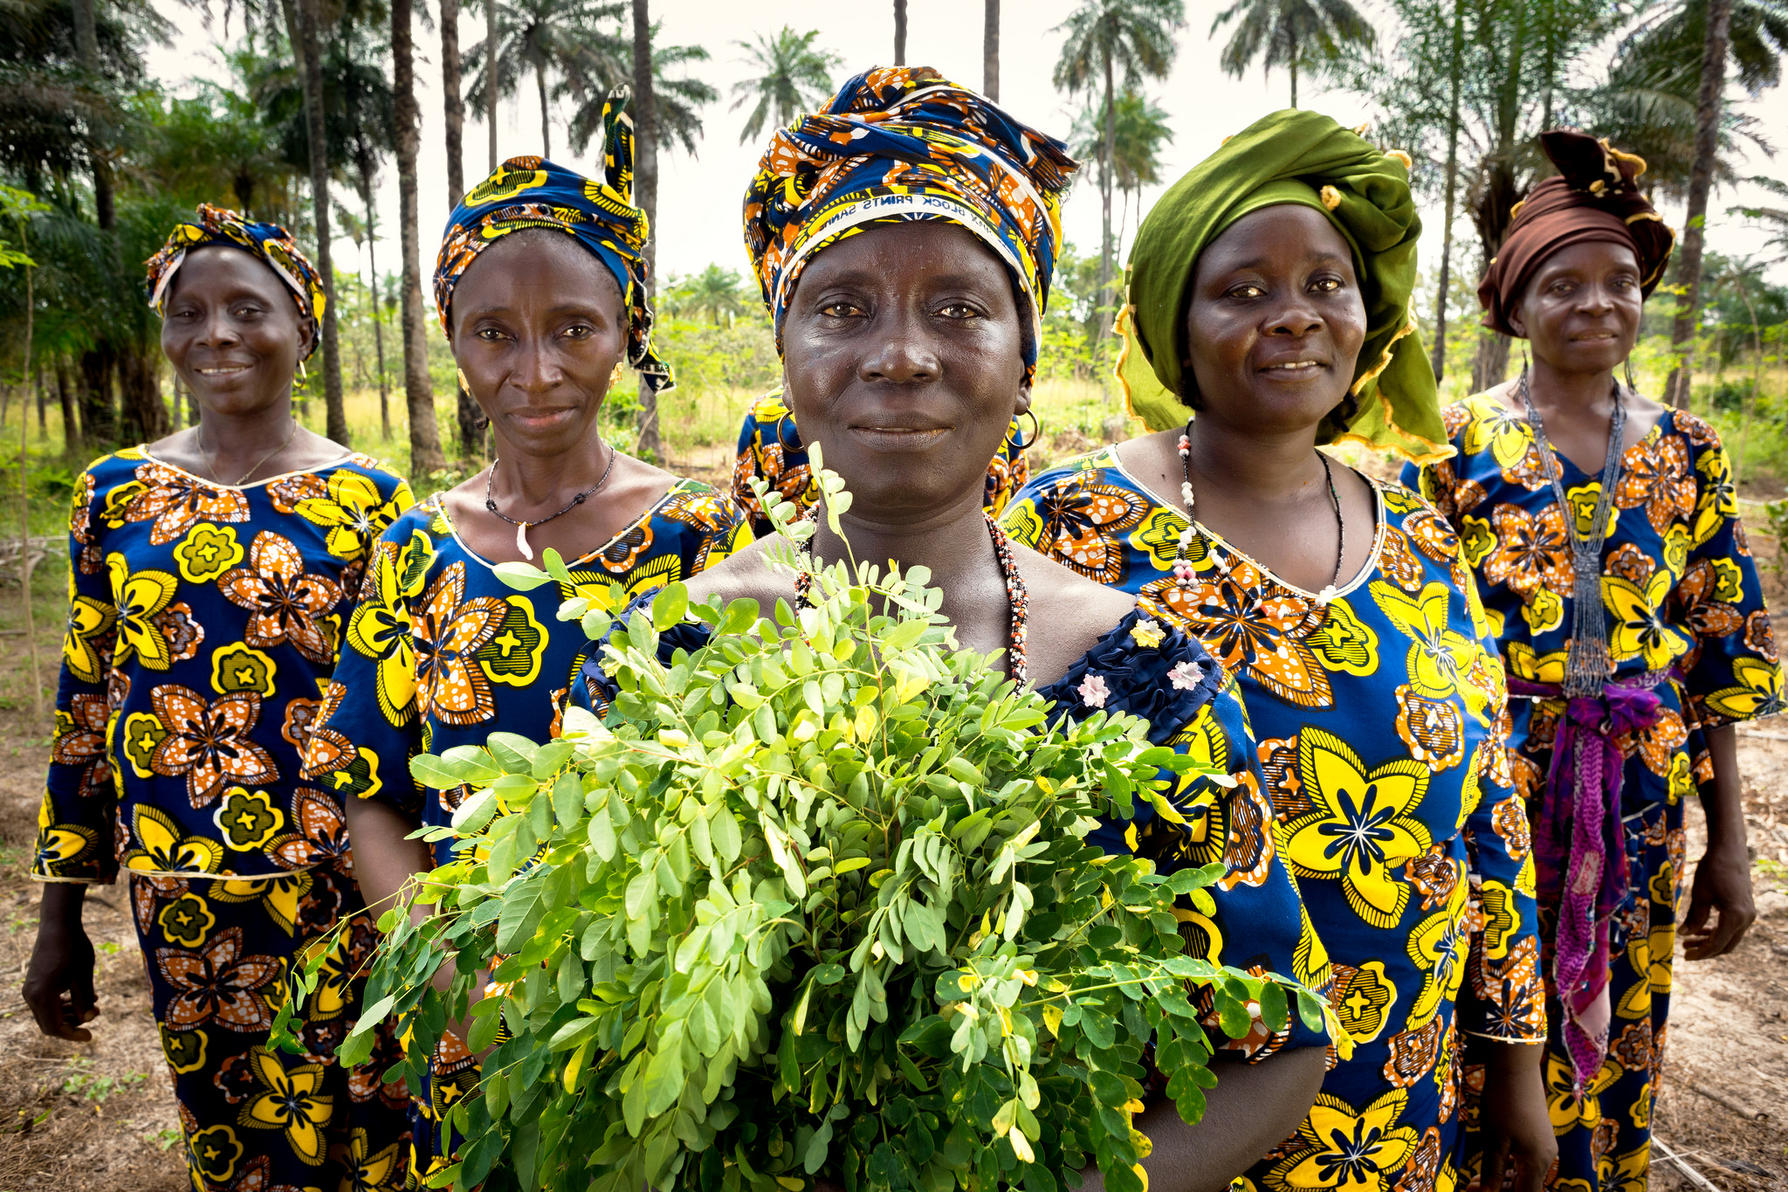 Women from a rural tribe in Guinea face a camera (Photo courtesy of UN Women)